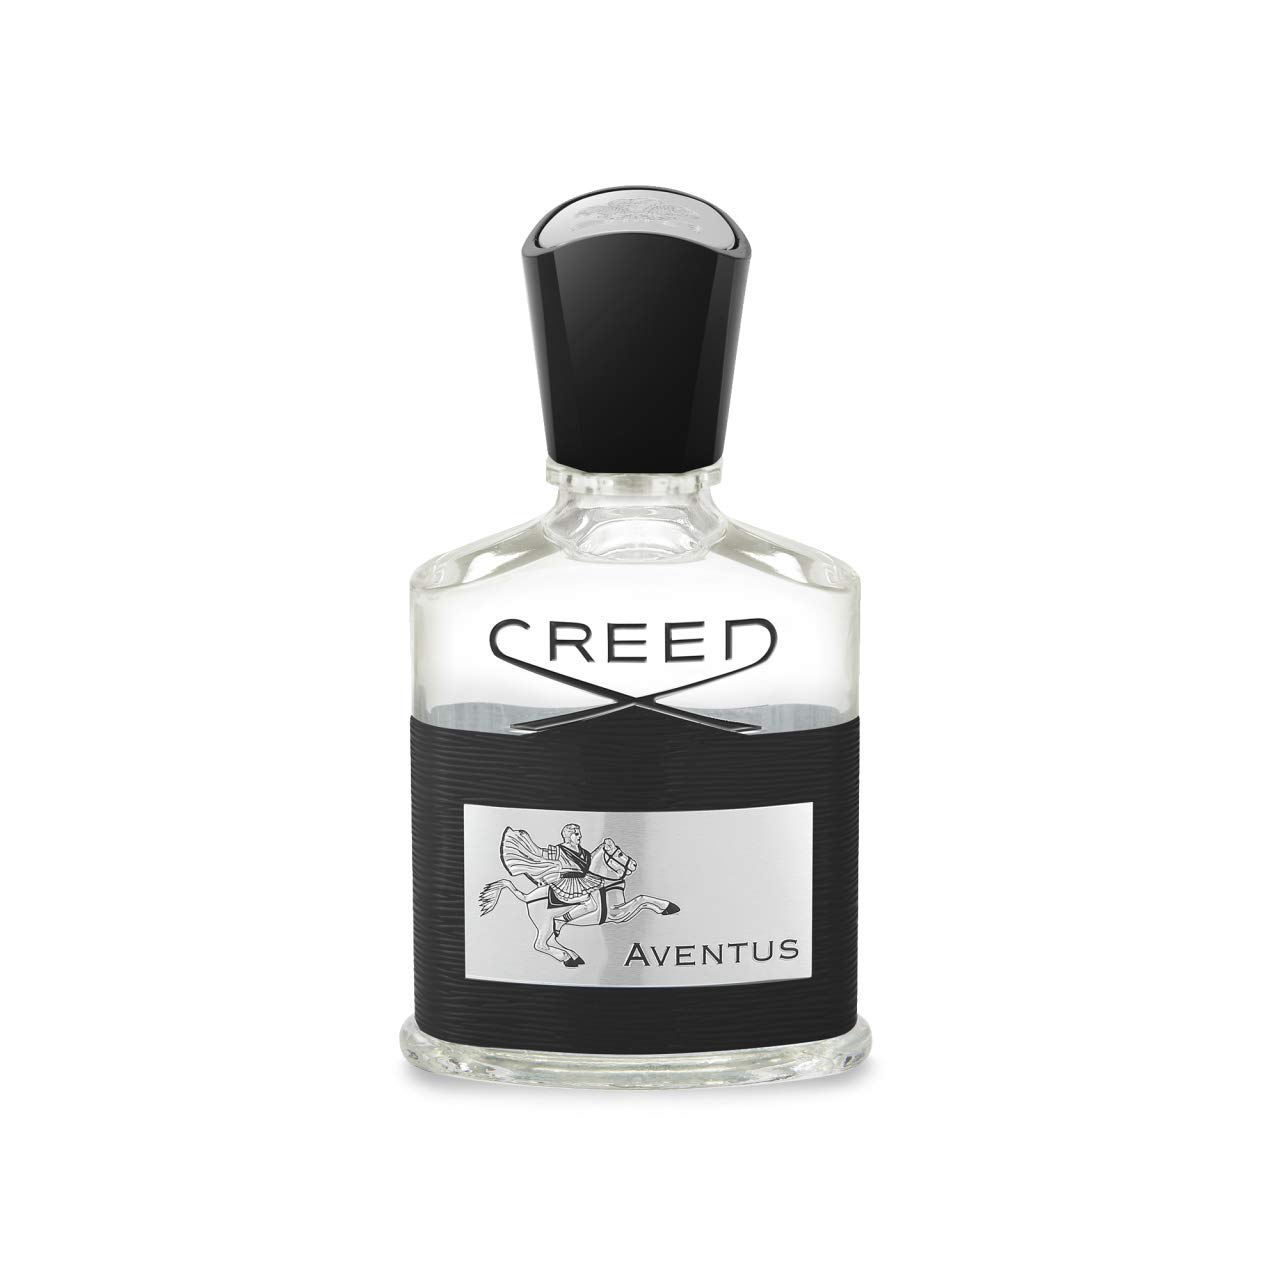 Best Creed Perfume for Men